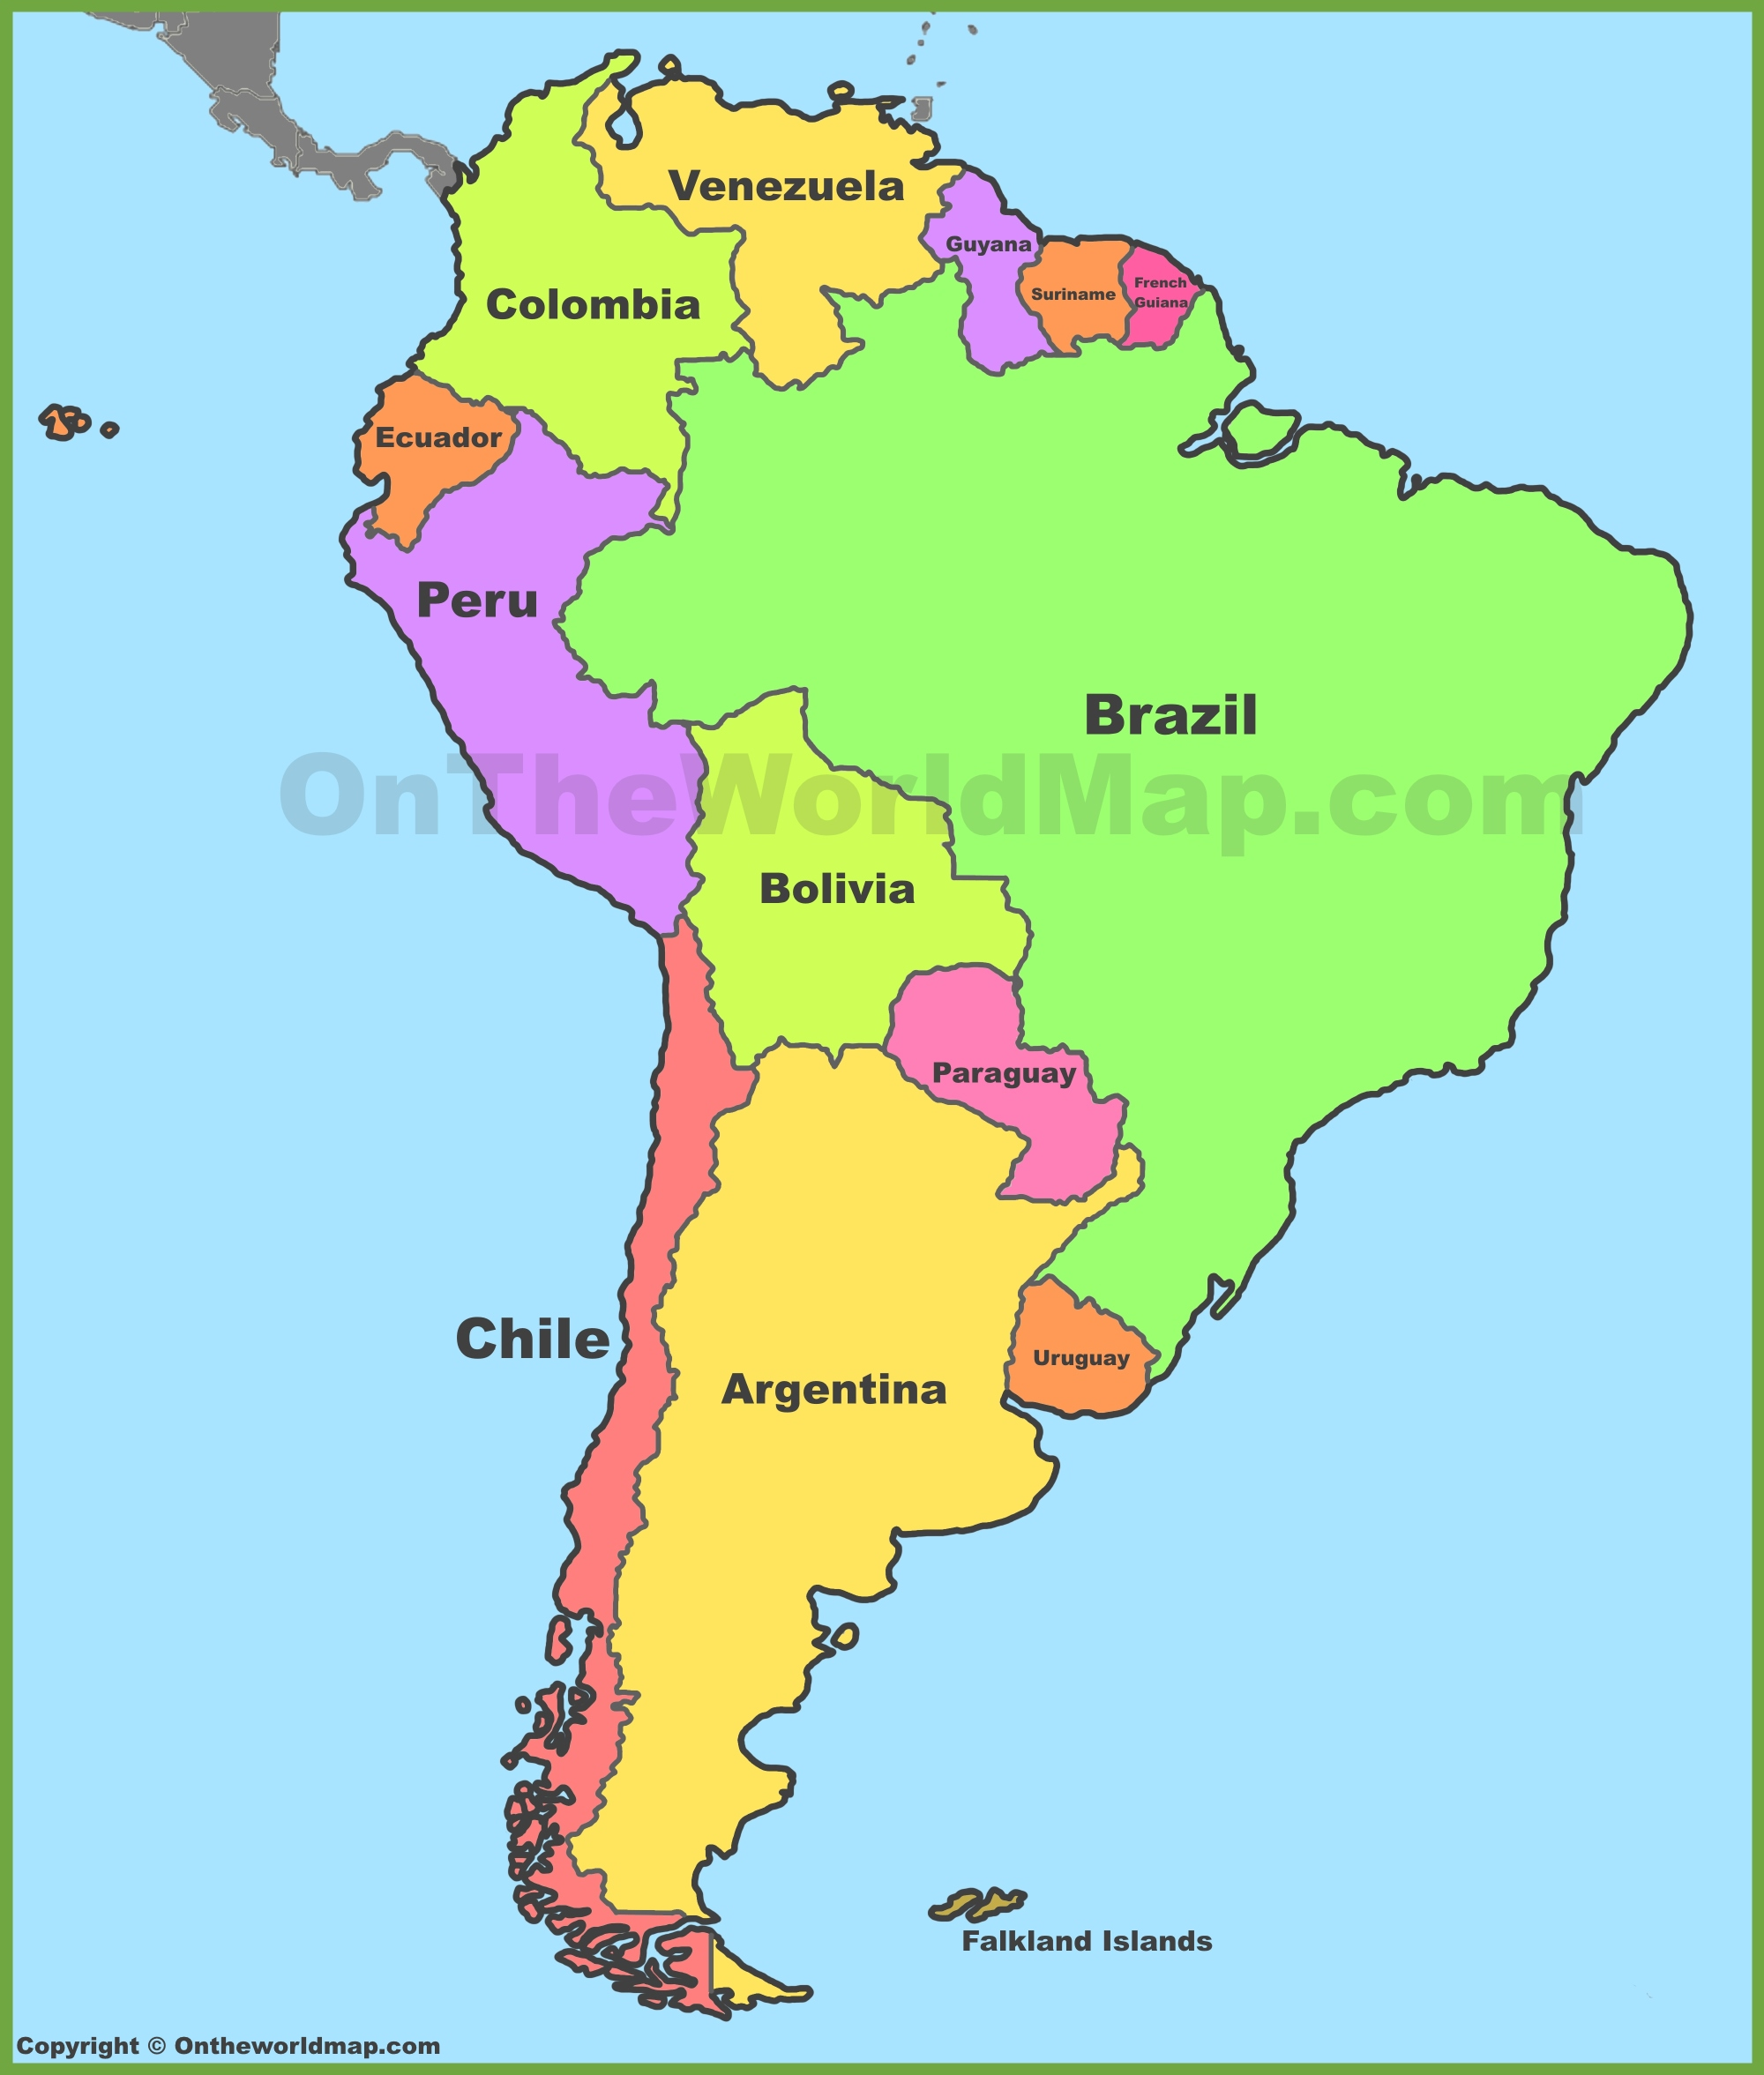 South America Maps Maps of South America OnTheWorldMapcom